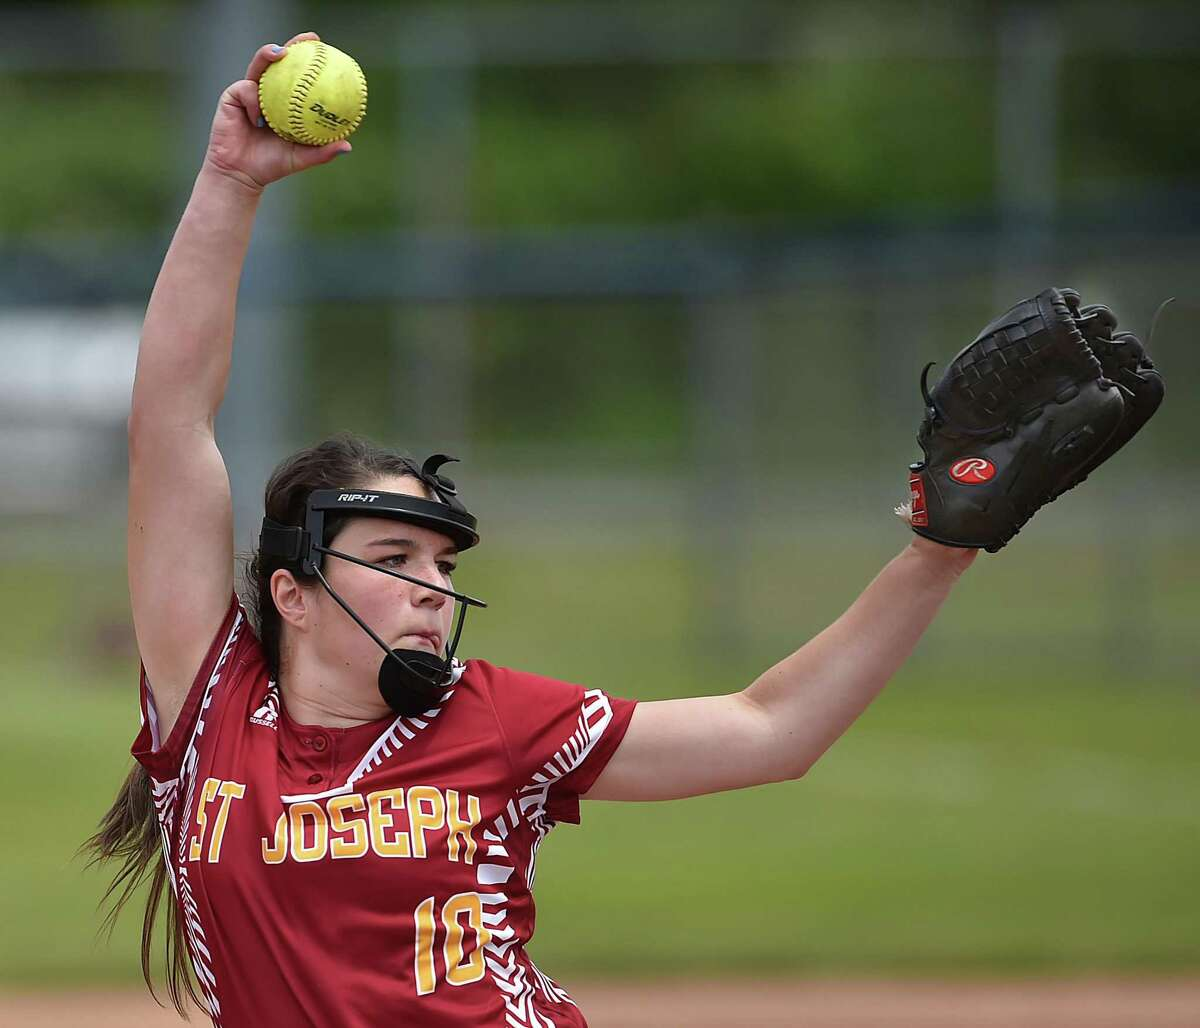 St. Joseph's Payton Doiron has allowed just five earned runs in more than 40 innings so far this spring.